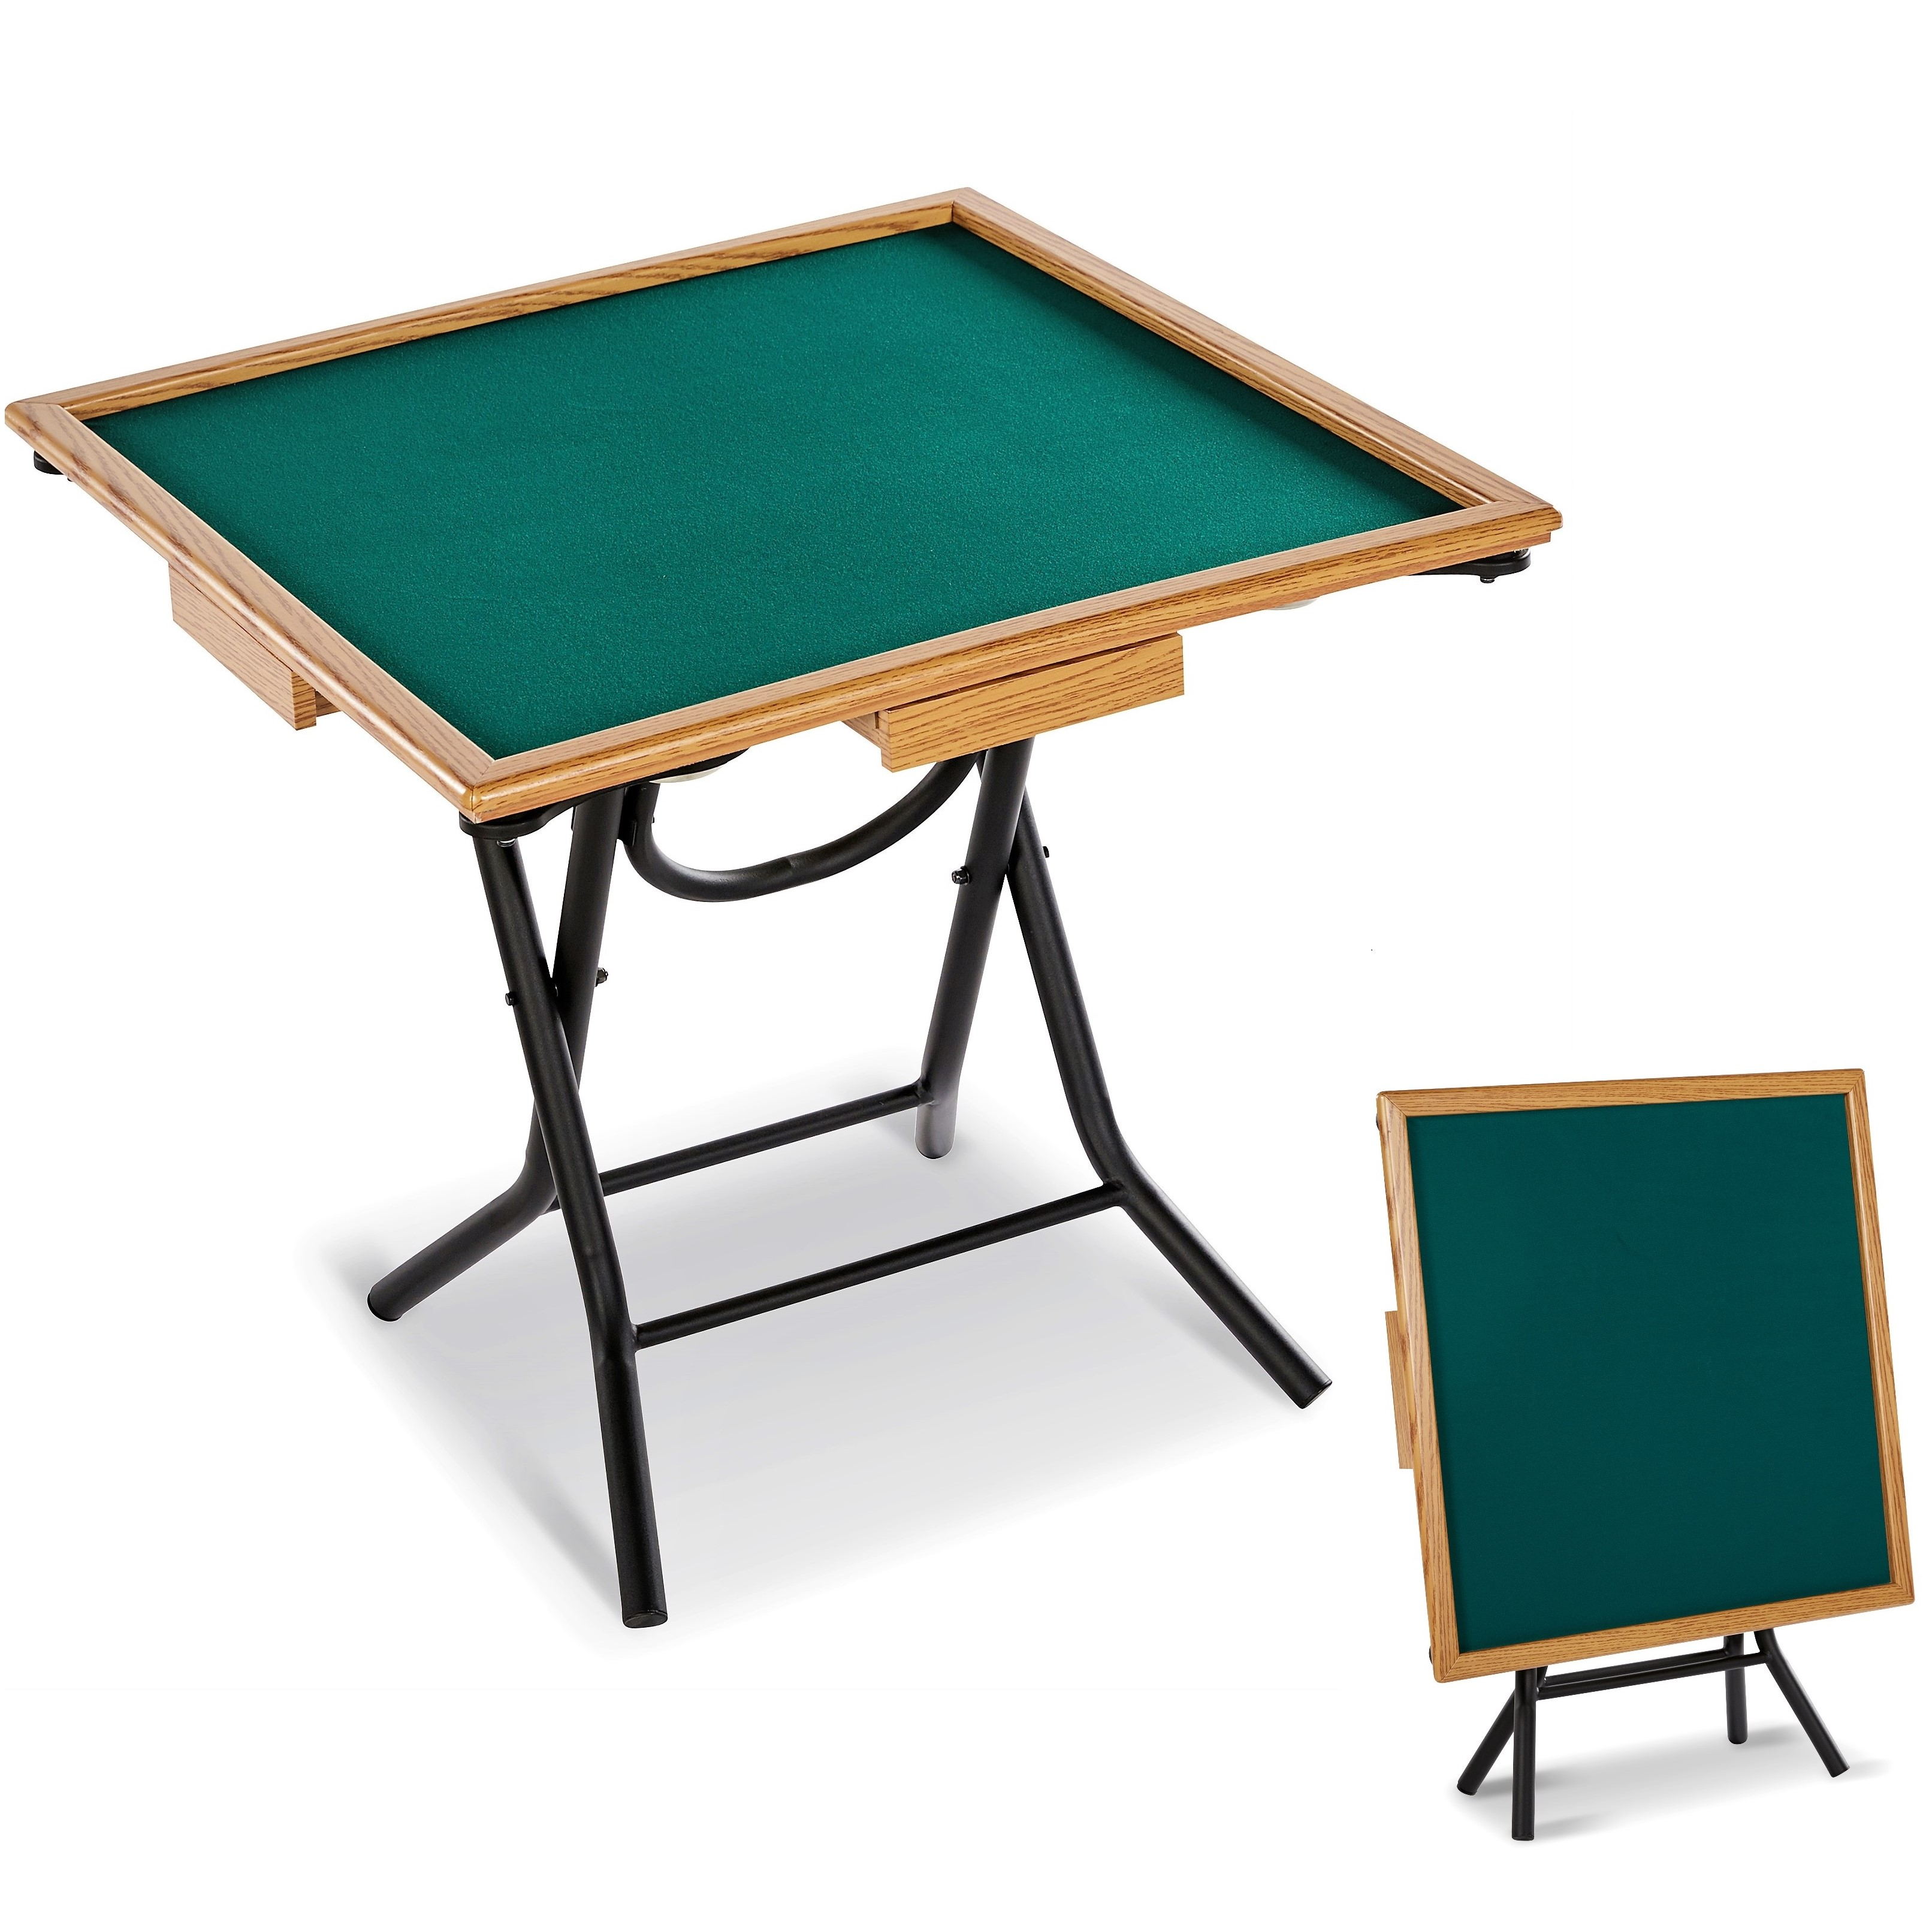 MD Sports Foldable Gaming Table, Board Game, Poker Game and Mahjong